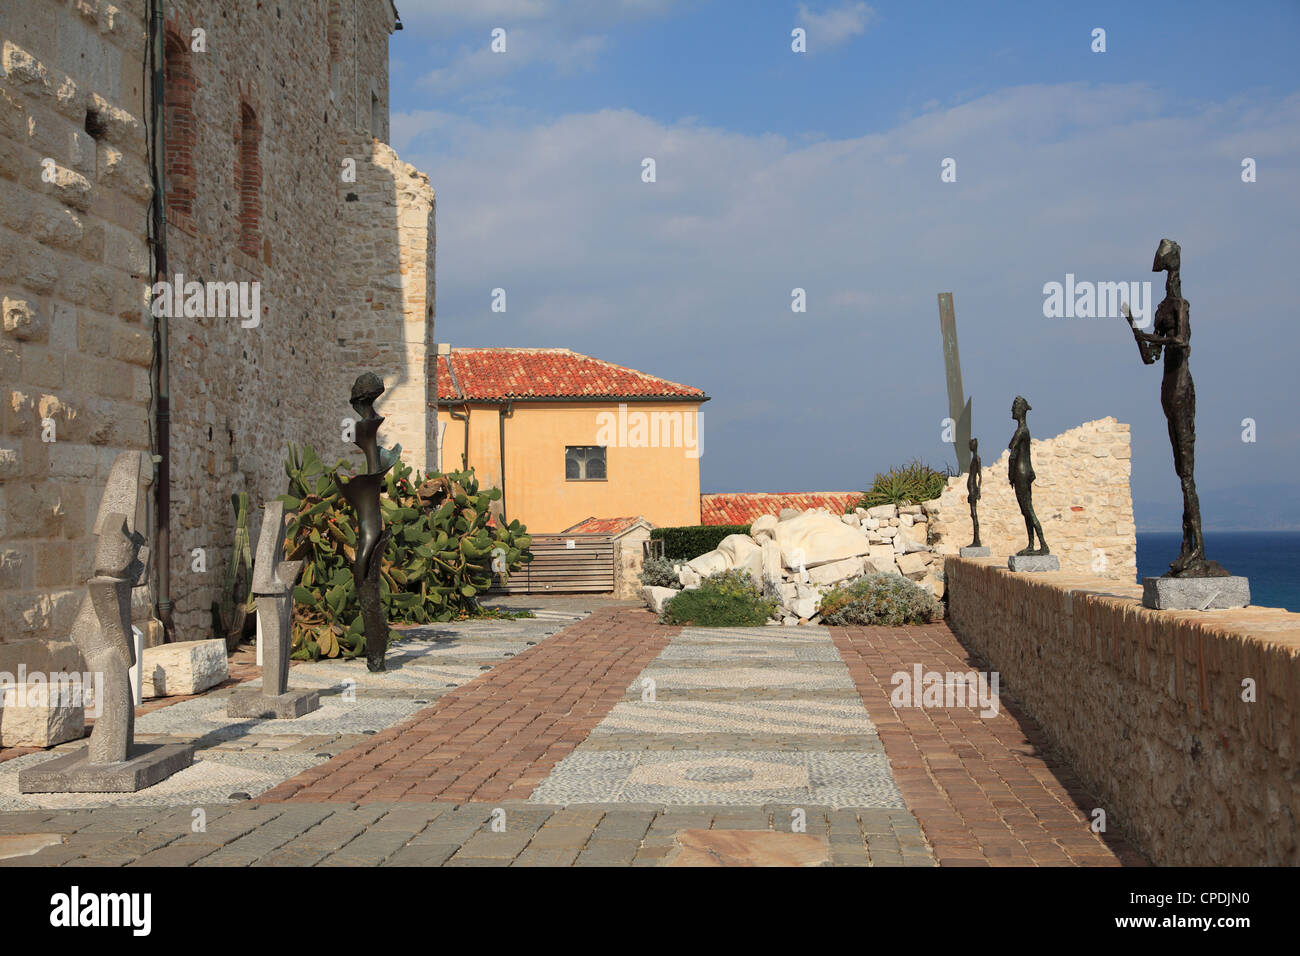 Picasso Museum, Old Town, Vieil Antibes, Antibes, Cote d'Azur, French Riviera, Mediterranean, Provence, France, - Stock Image